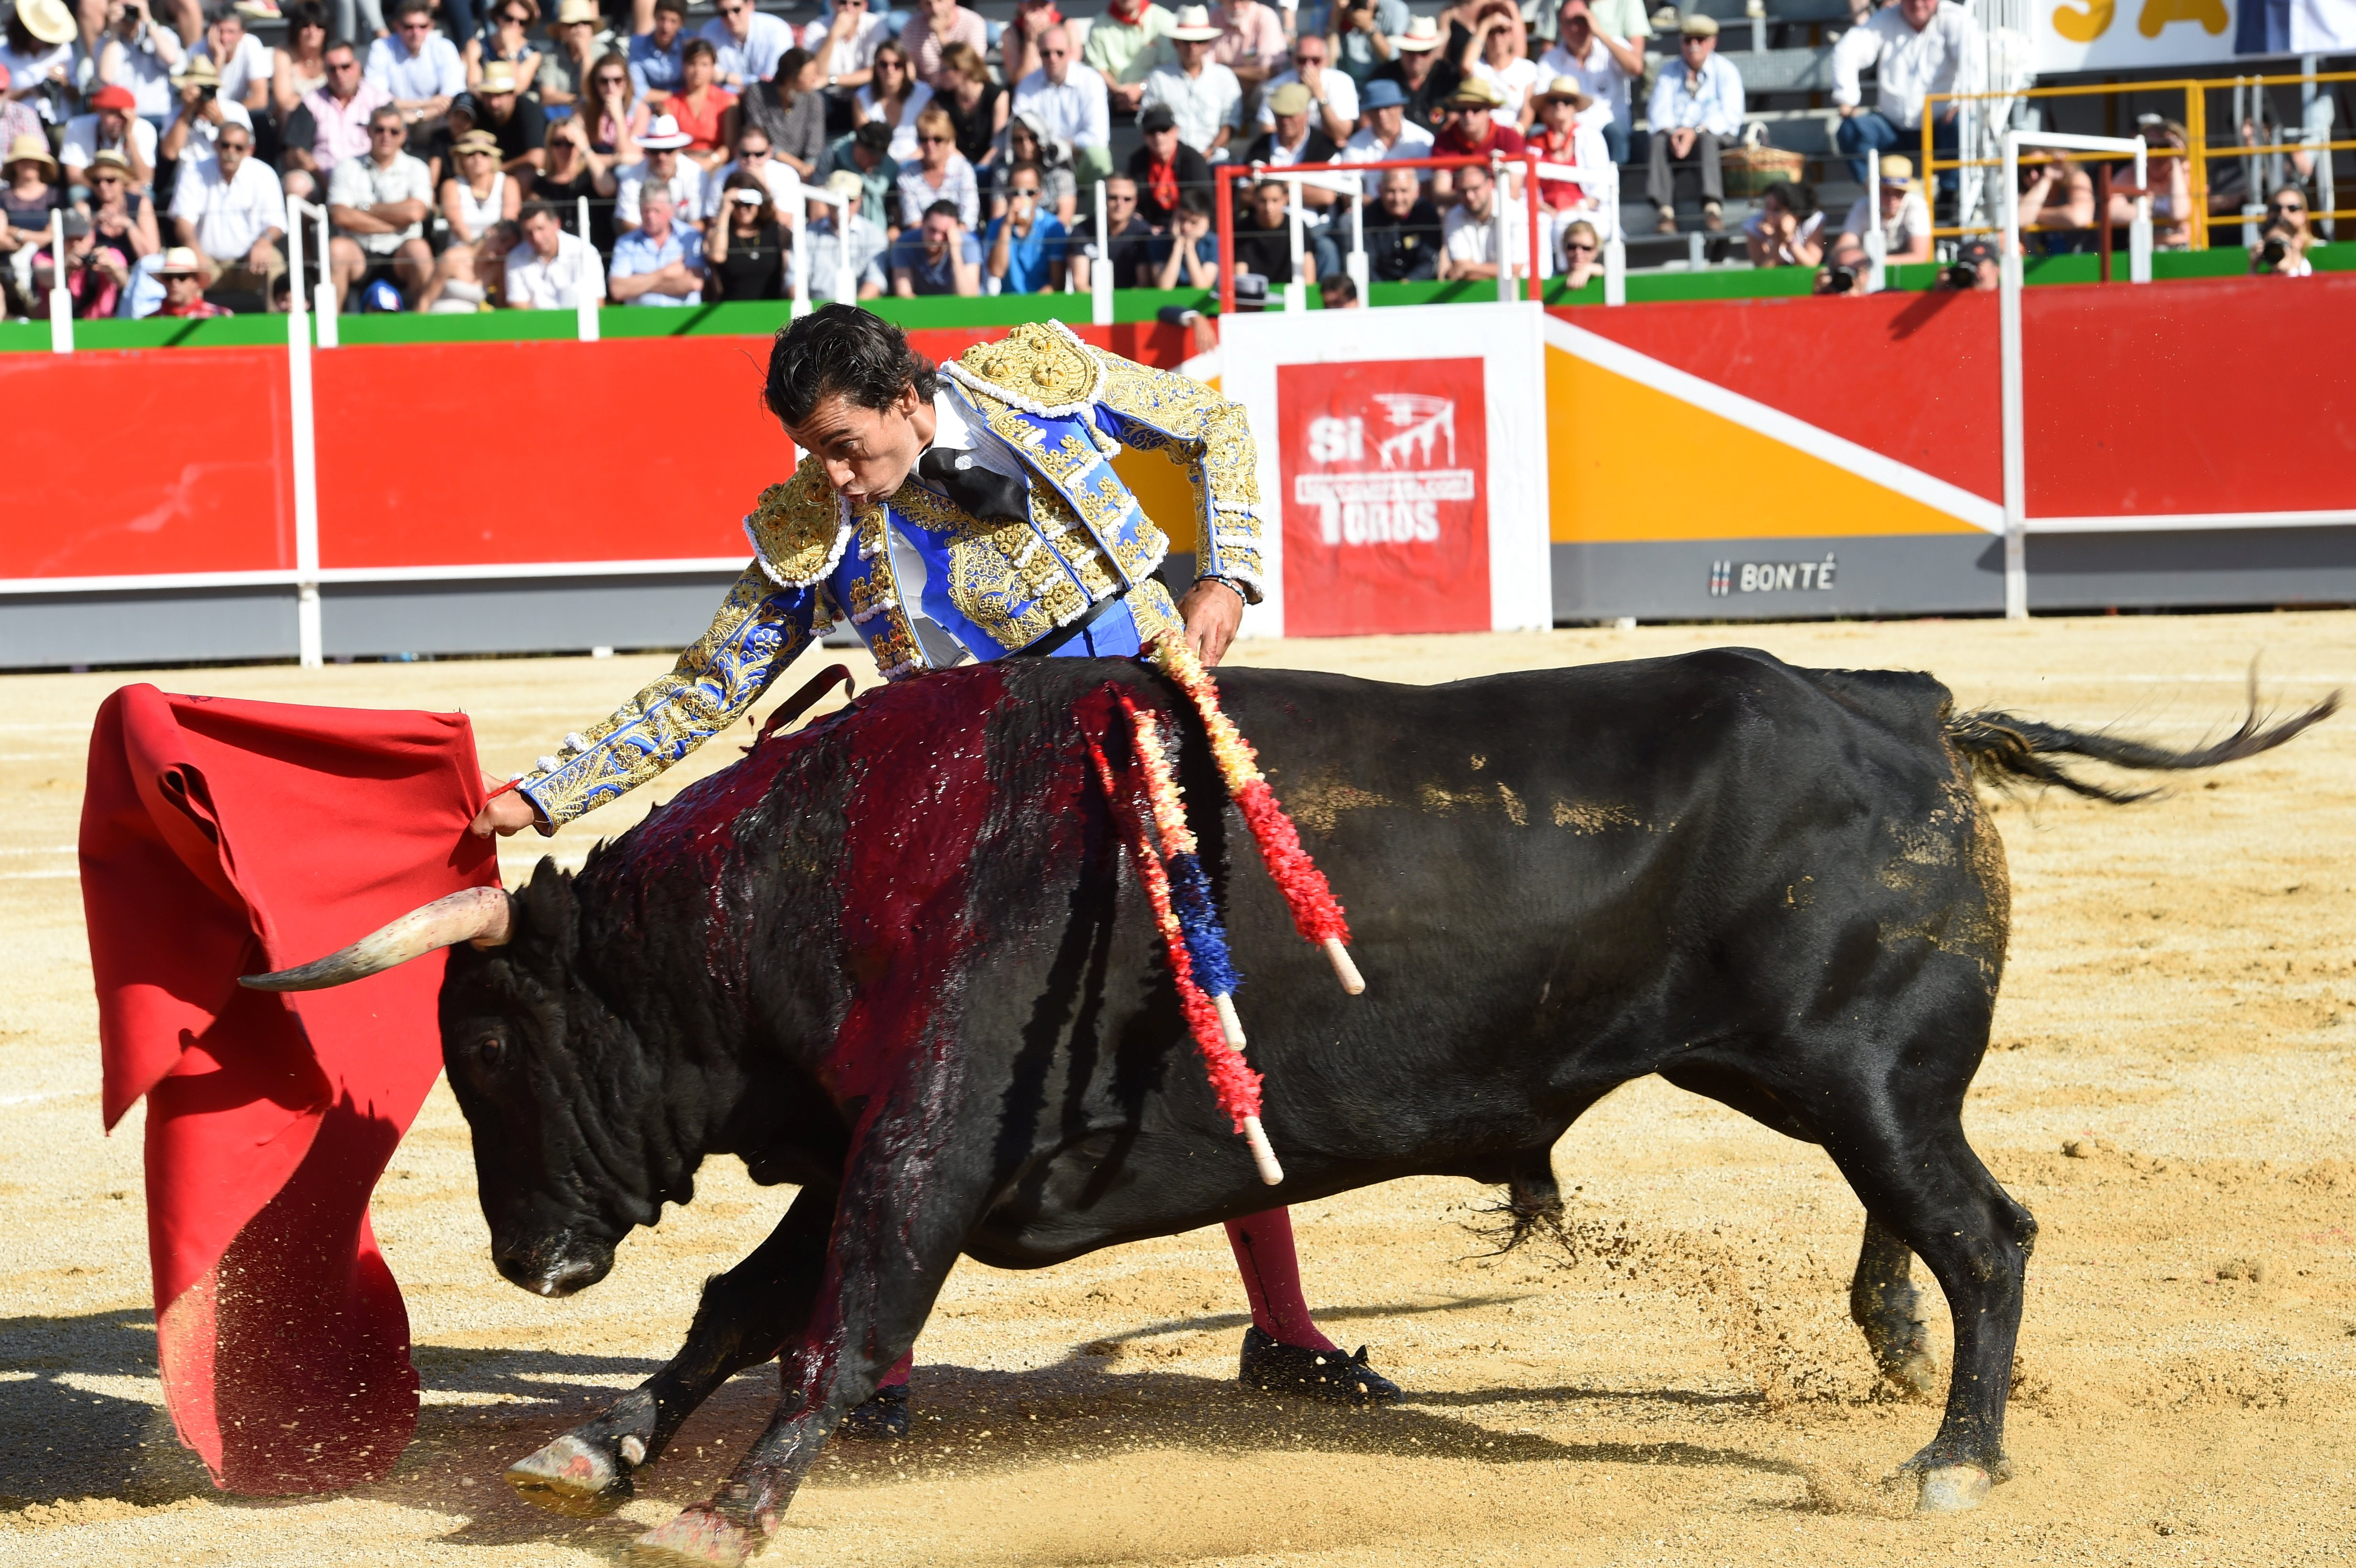 spanish matador curro diaz tortures a profusely bleeding bull mehdi fedouachafpgetty images